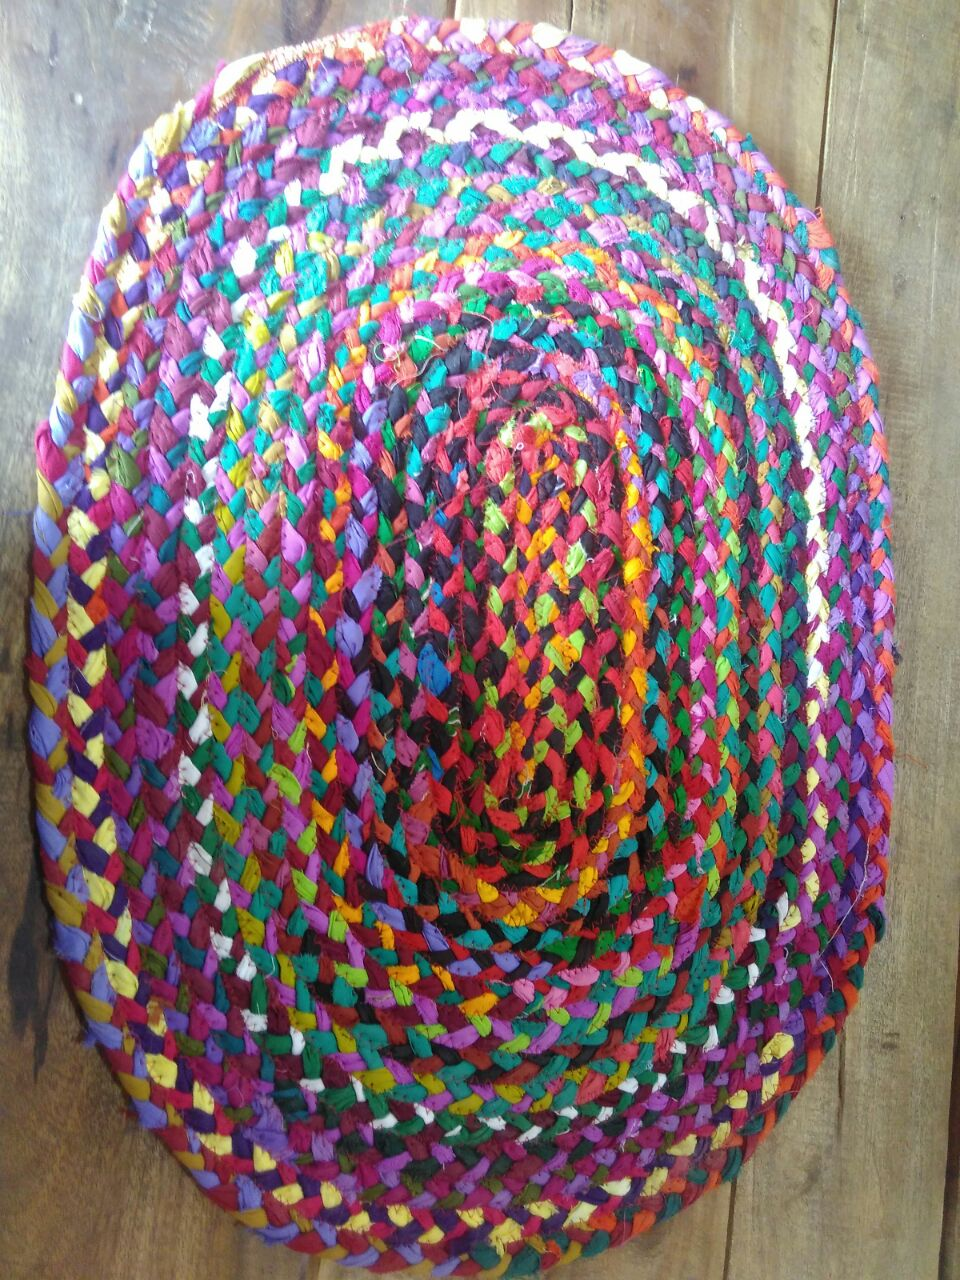 Braided & Cotton rugs